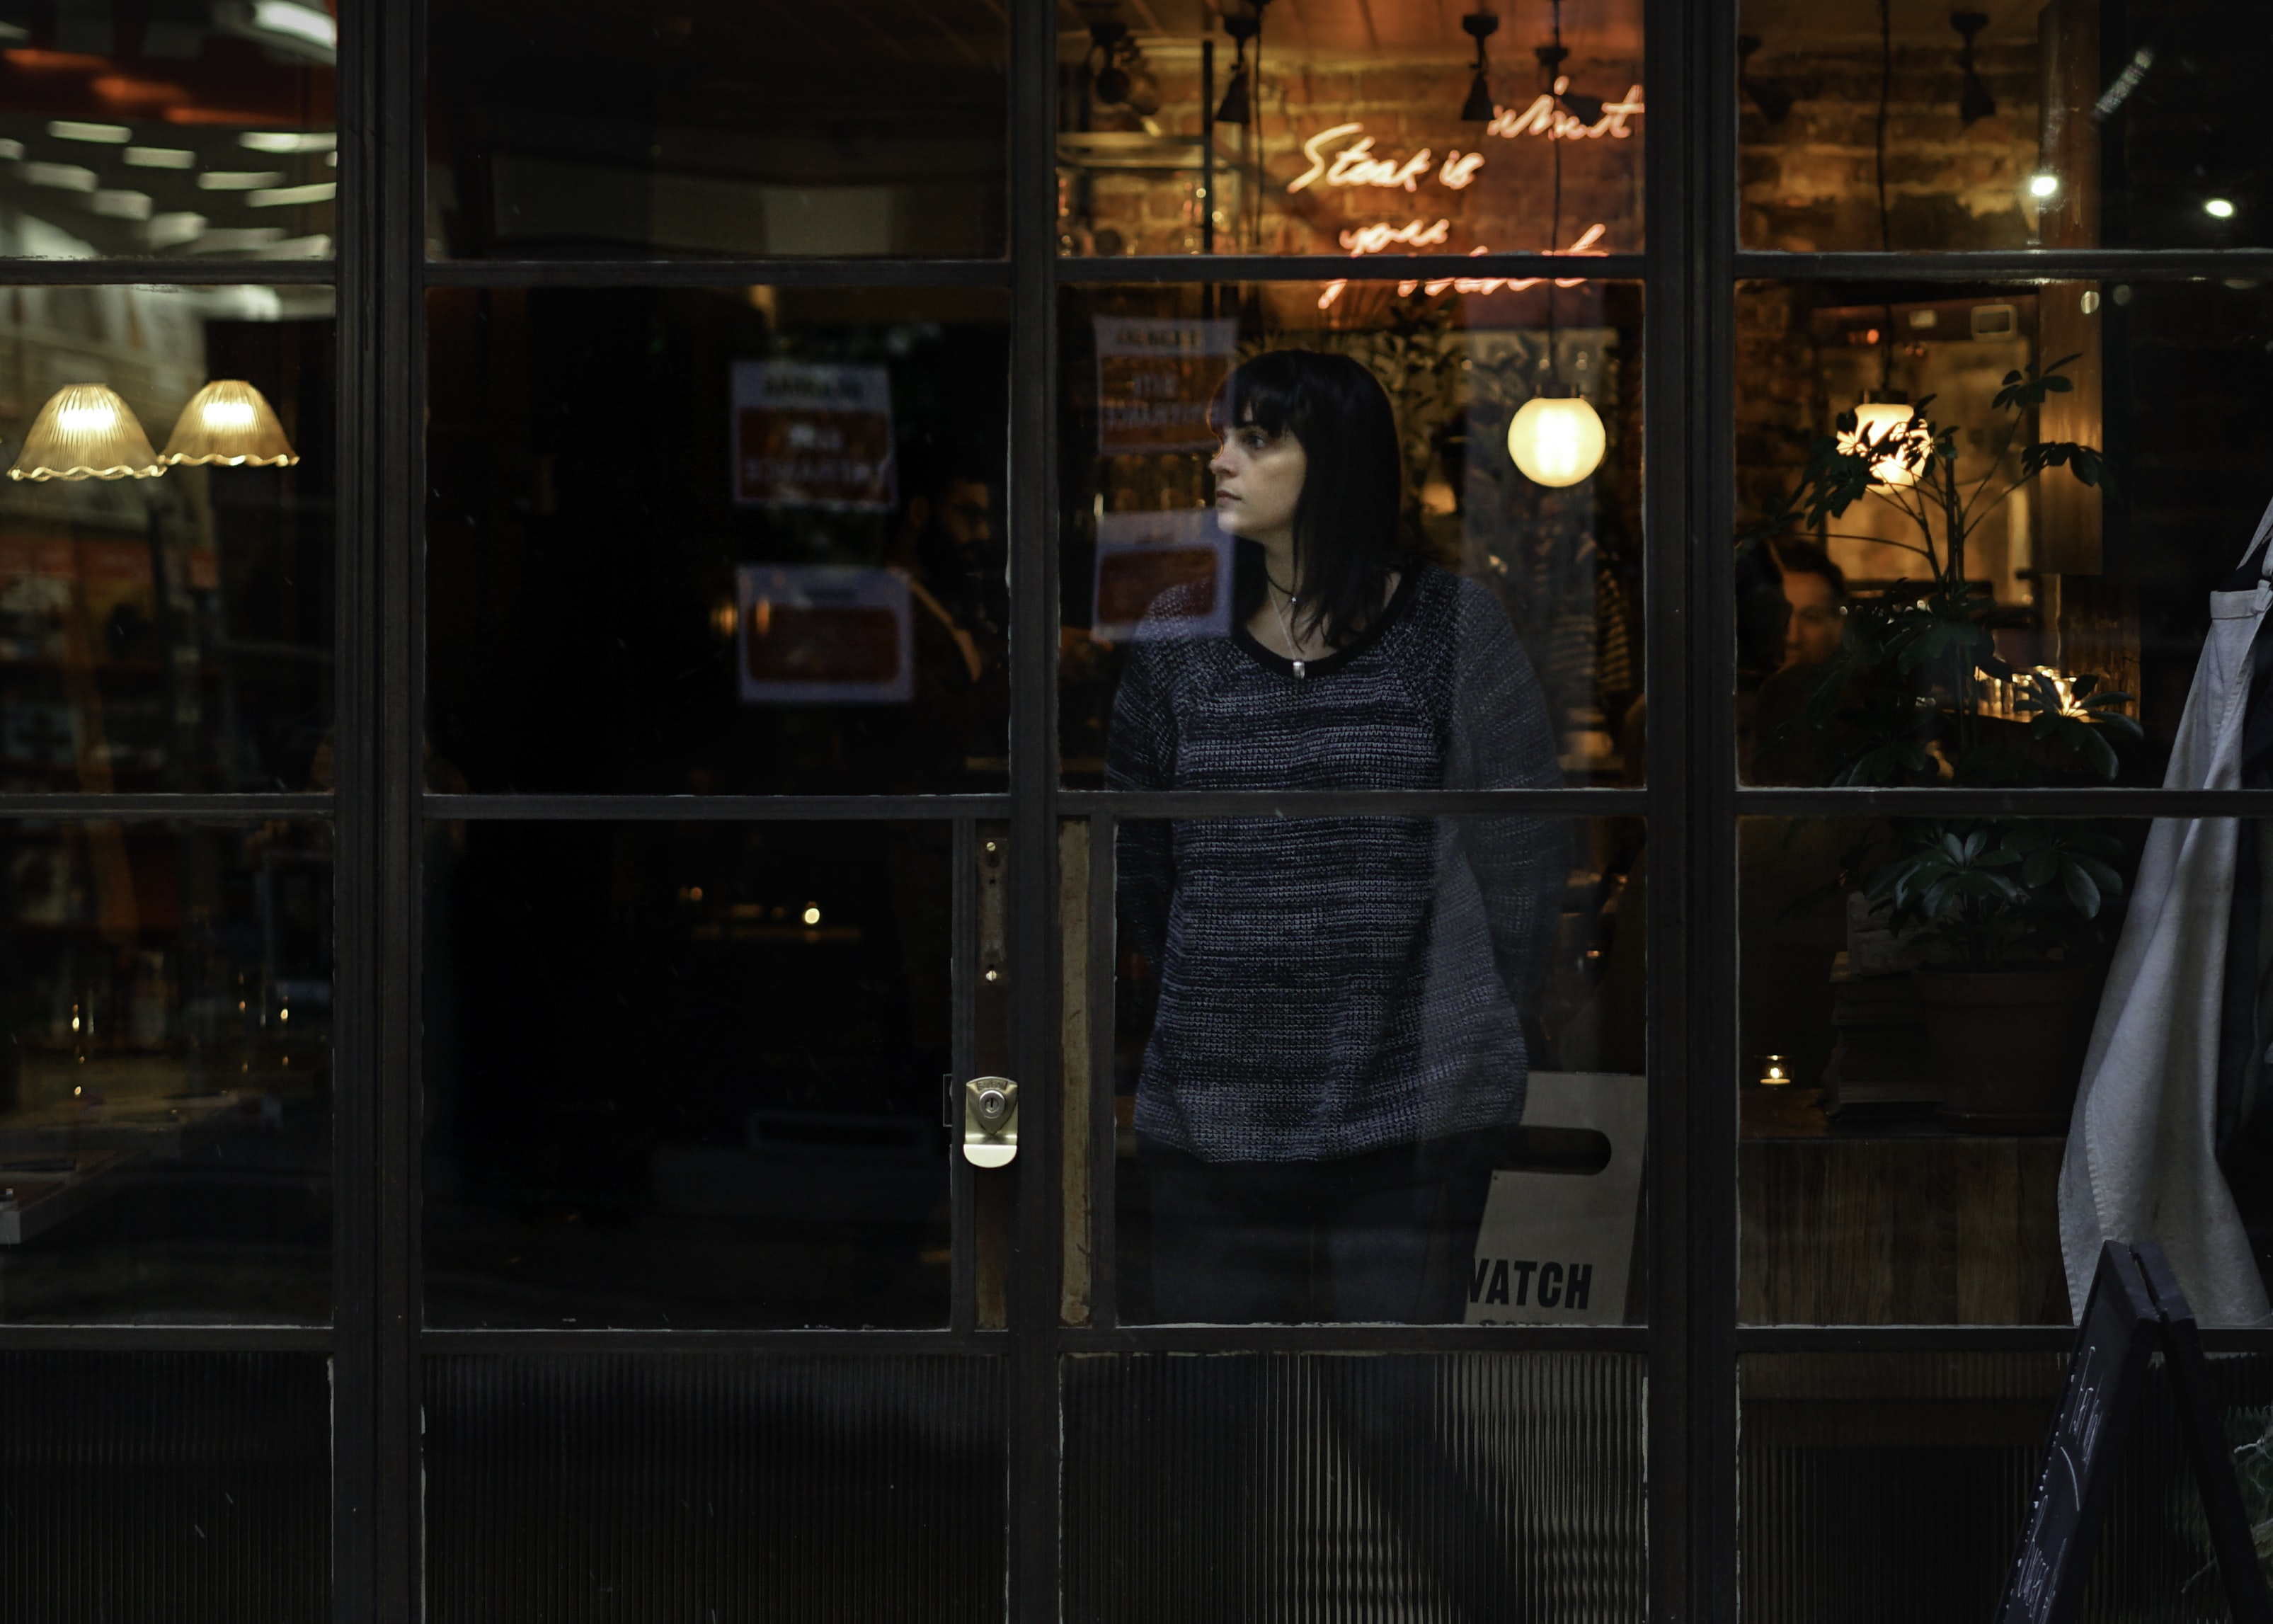 woman standing near glass window